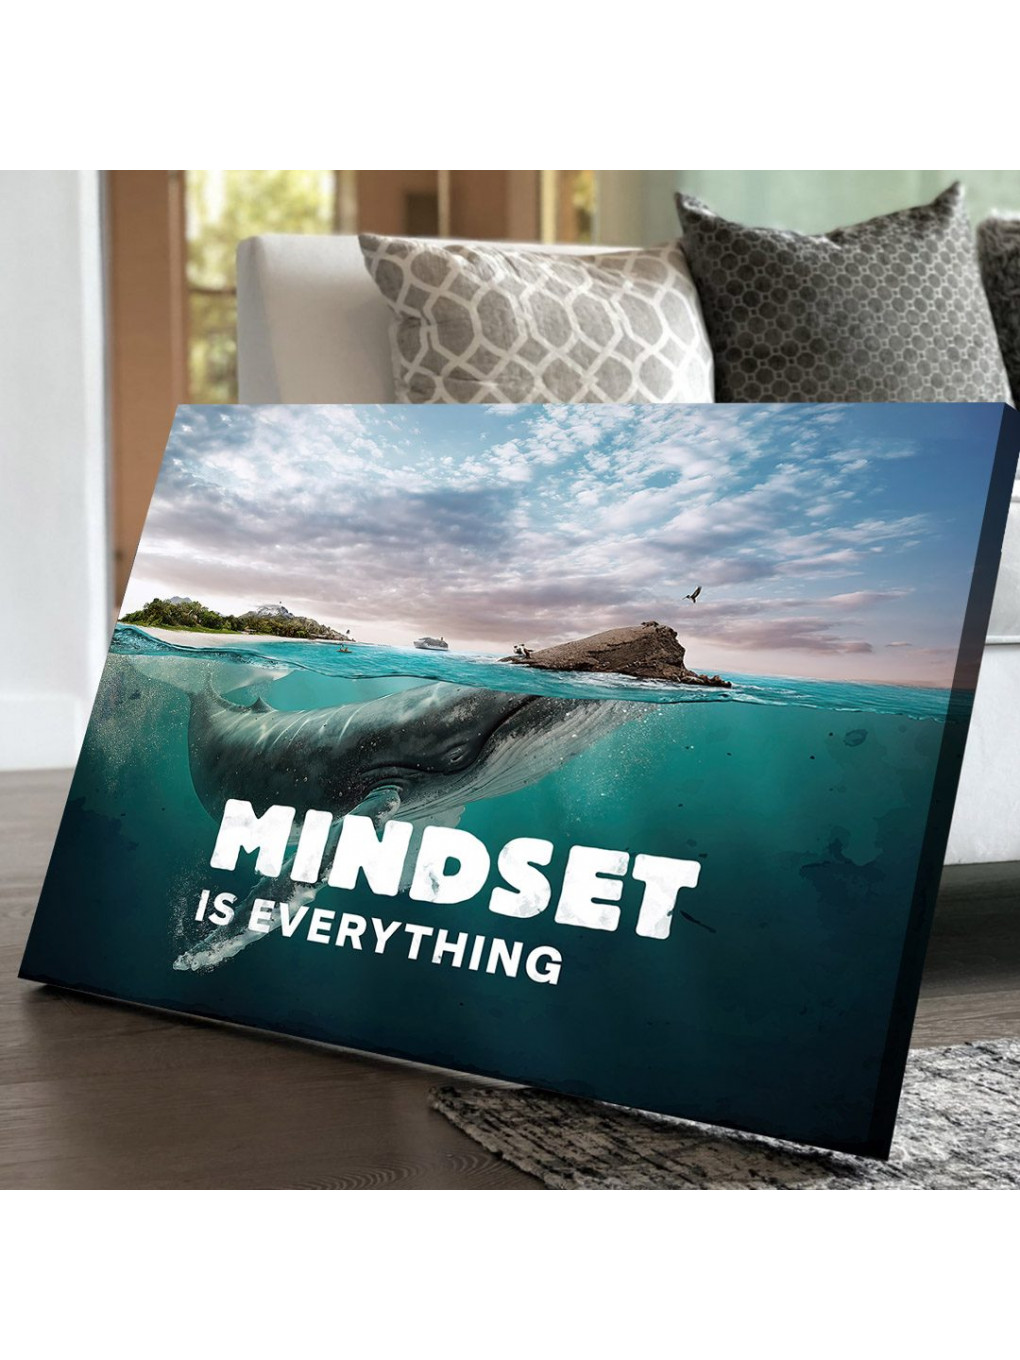 Mindset is everything (Whale)_MND120_4